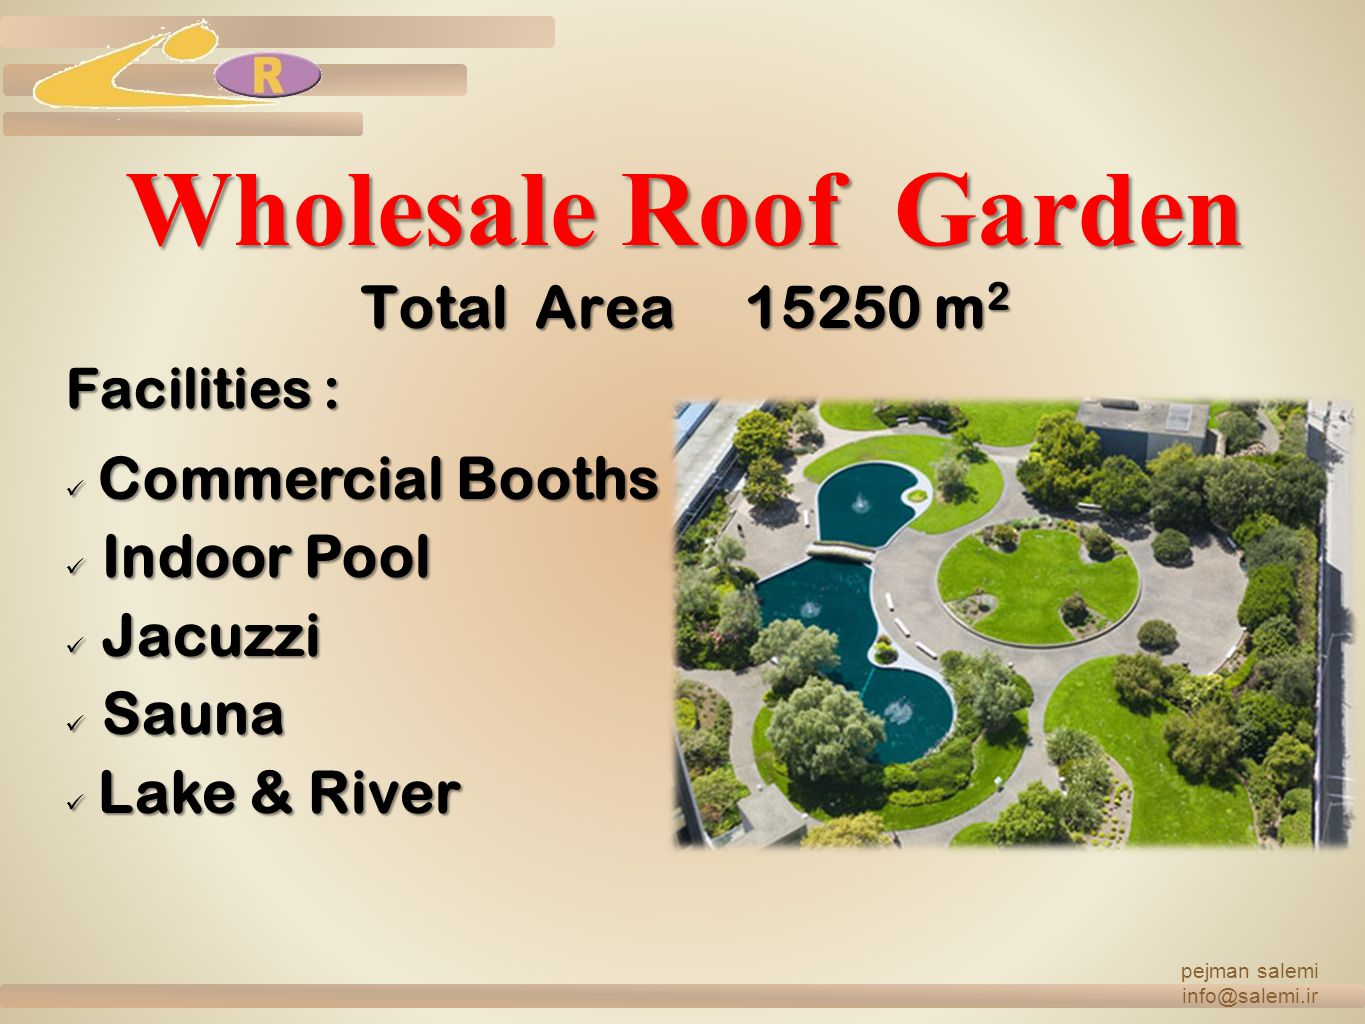 Wholesale Roof Garden Total Area 15250 m2